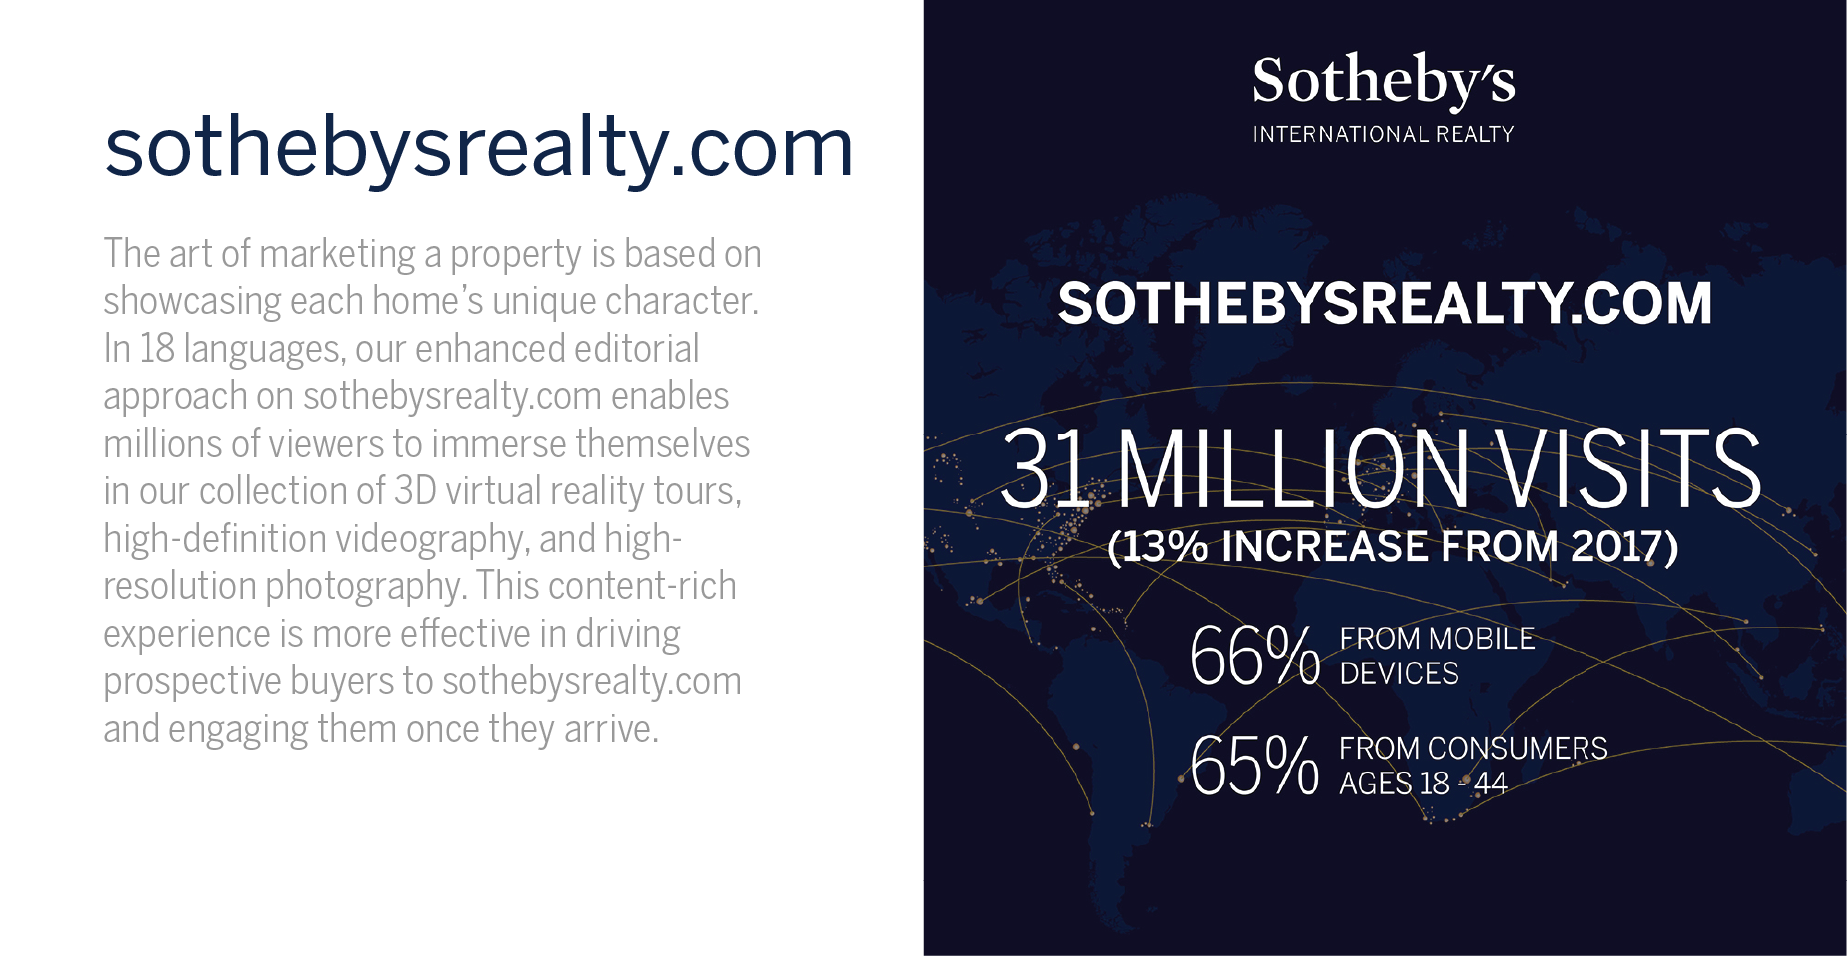 SIR Website sothebysrealty.com